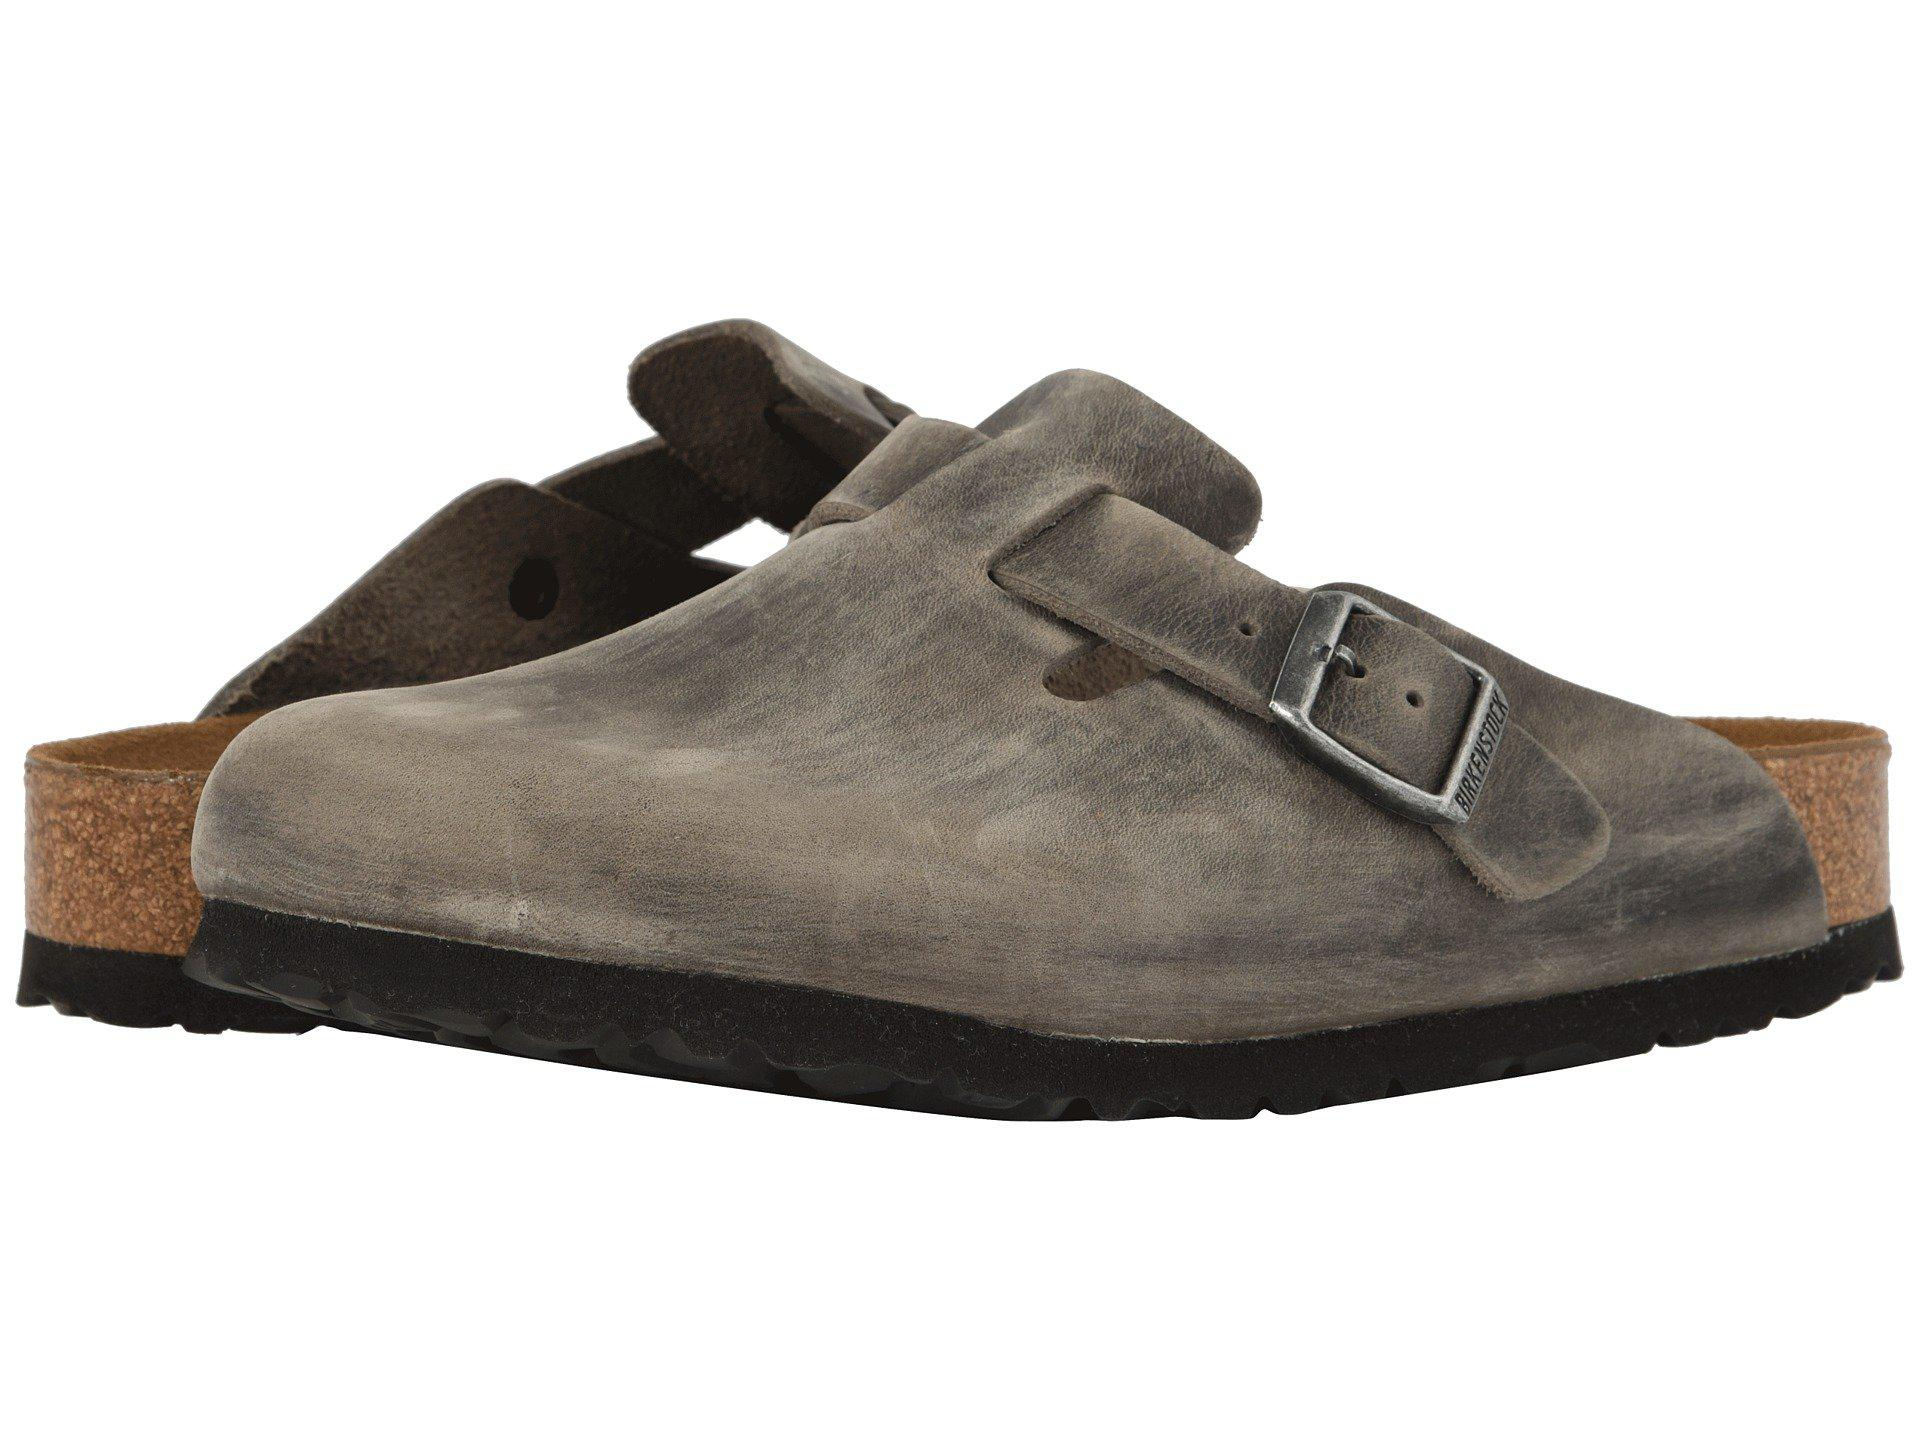 d8d88b775c5e Birkenstock. Women s Boston Soft Footbed (iron Oiled Leather) Clog Shoes